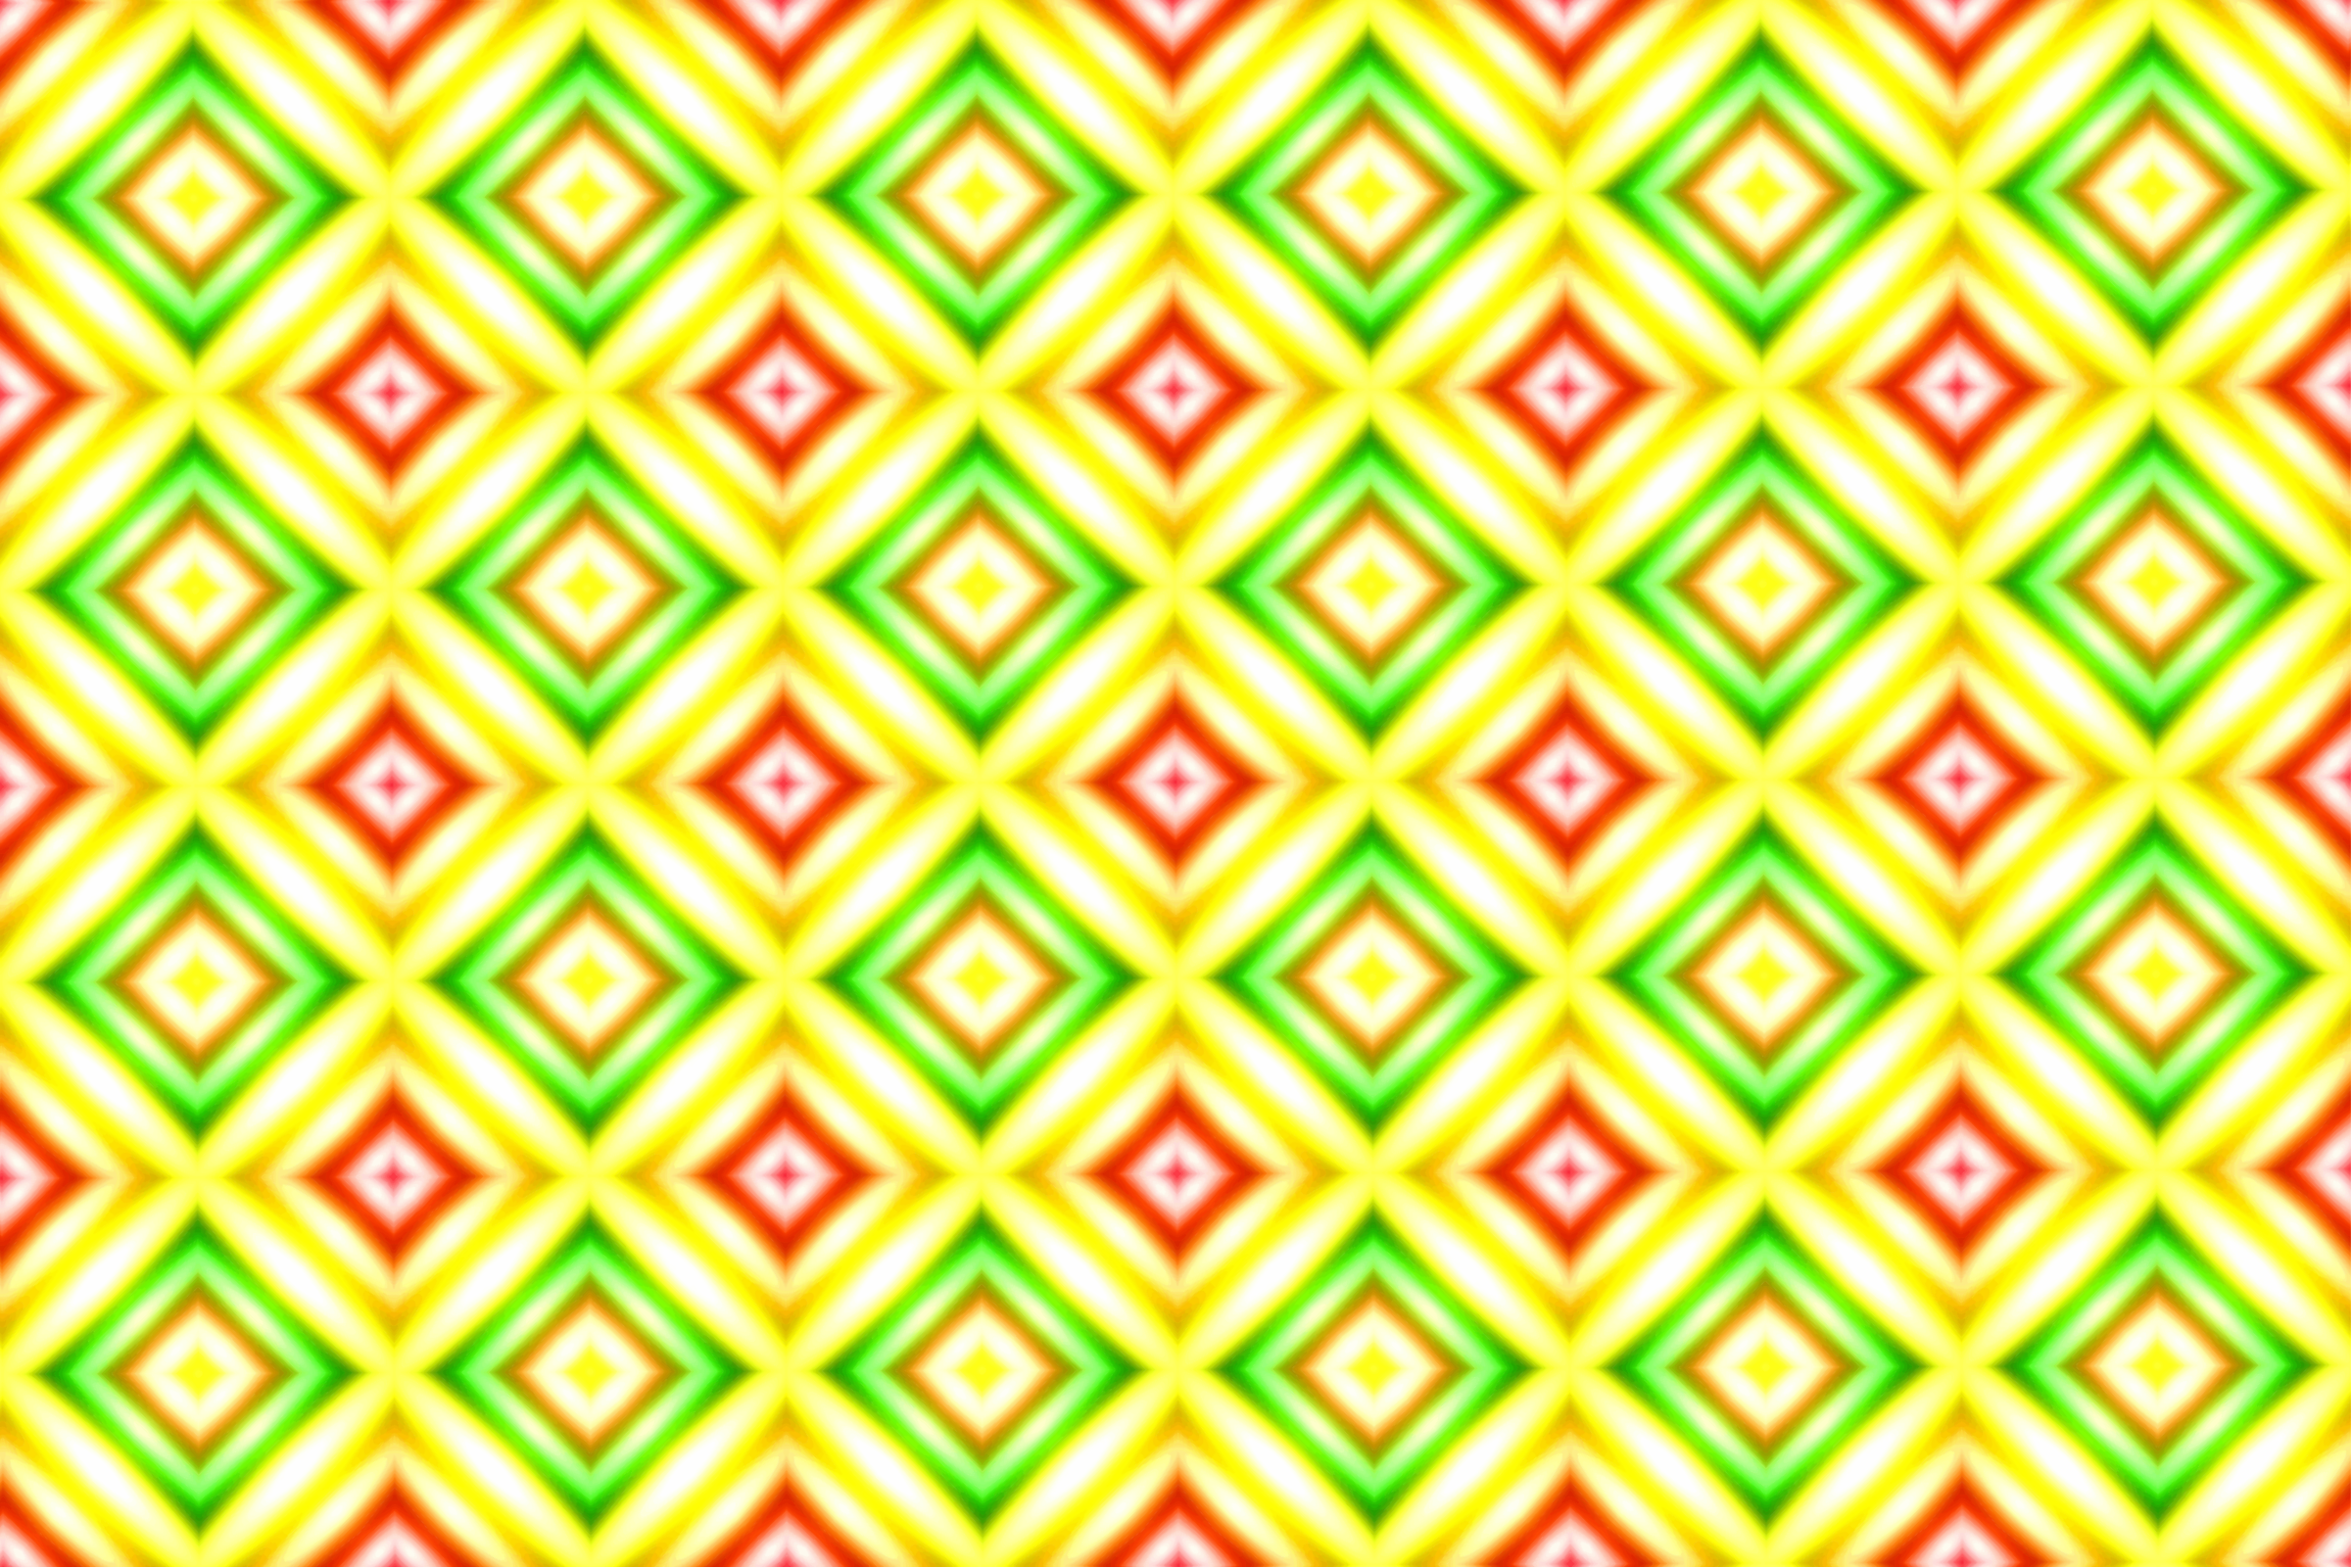 Background pattern 235 by Firkin